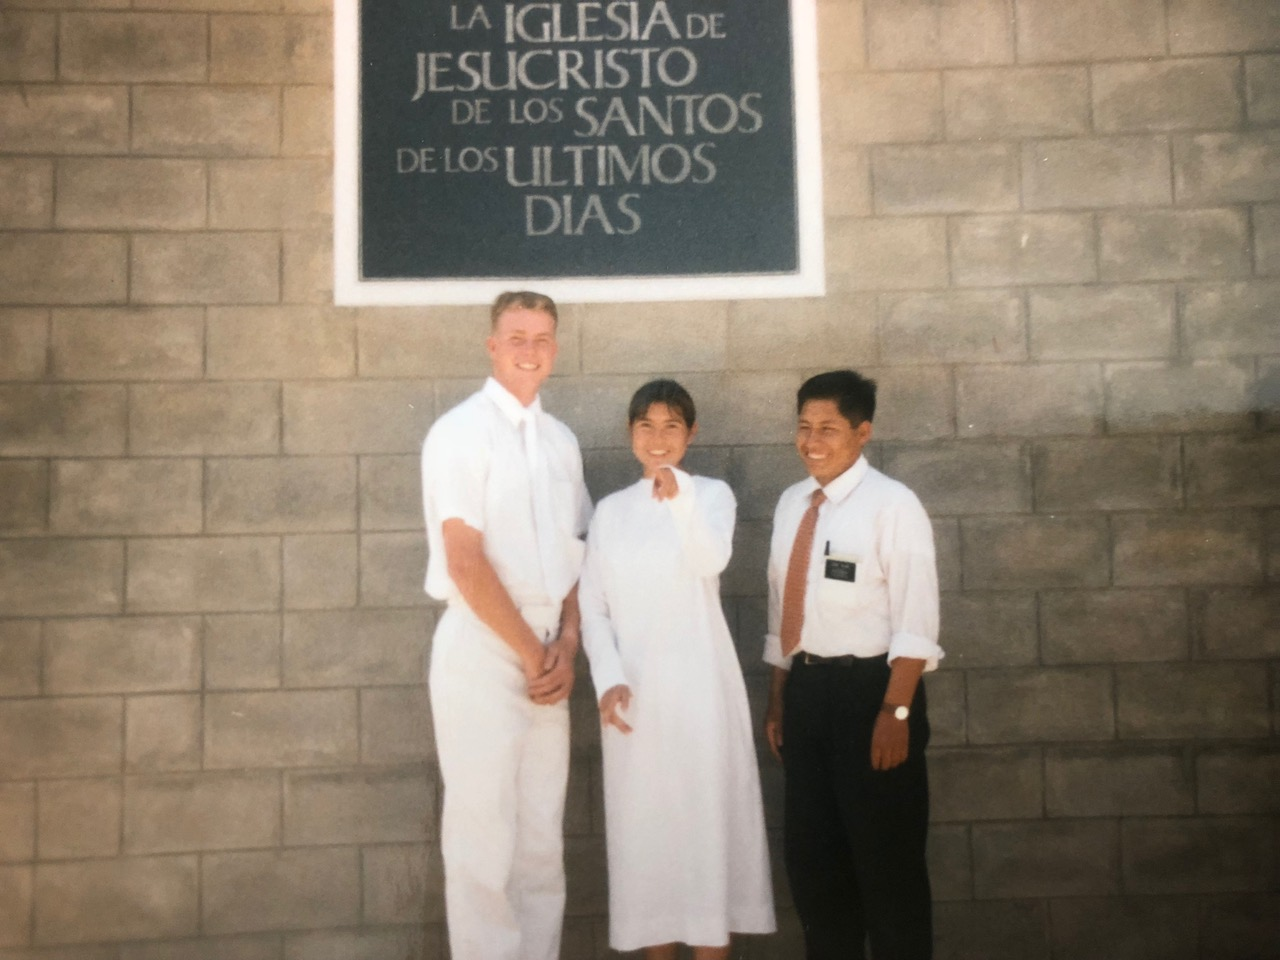 Davis Smith and his companion Elder Alberto Quispe with Giovanna, a member he taught during his time near Cochabamba 20 years ago. Giovanna was baptized a few weeks after her brother Mauricio.